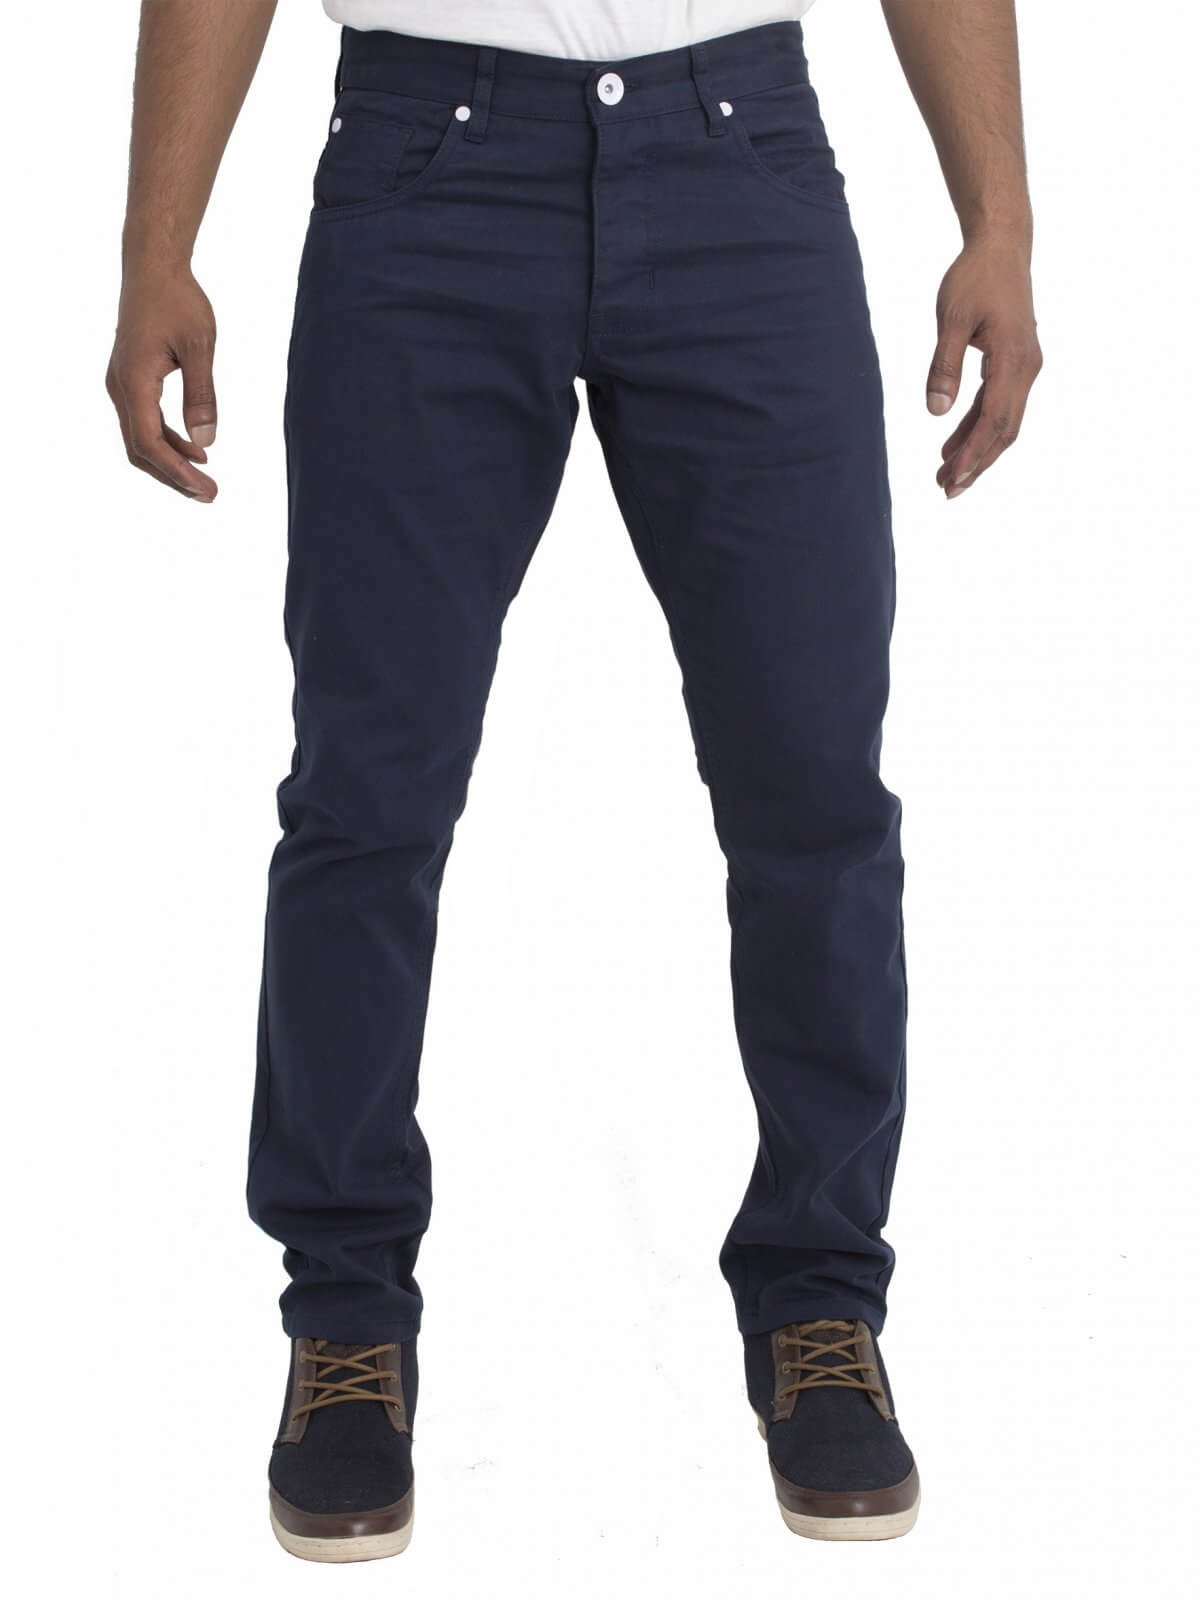 Clearance | Mens Navy Skinny Chino Denim Jeans | Enzo Designer Menswear